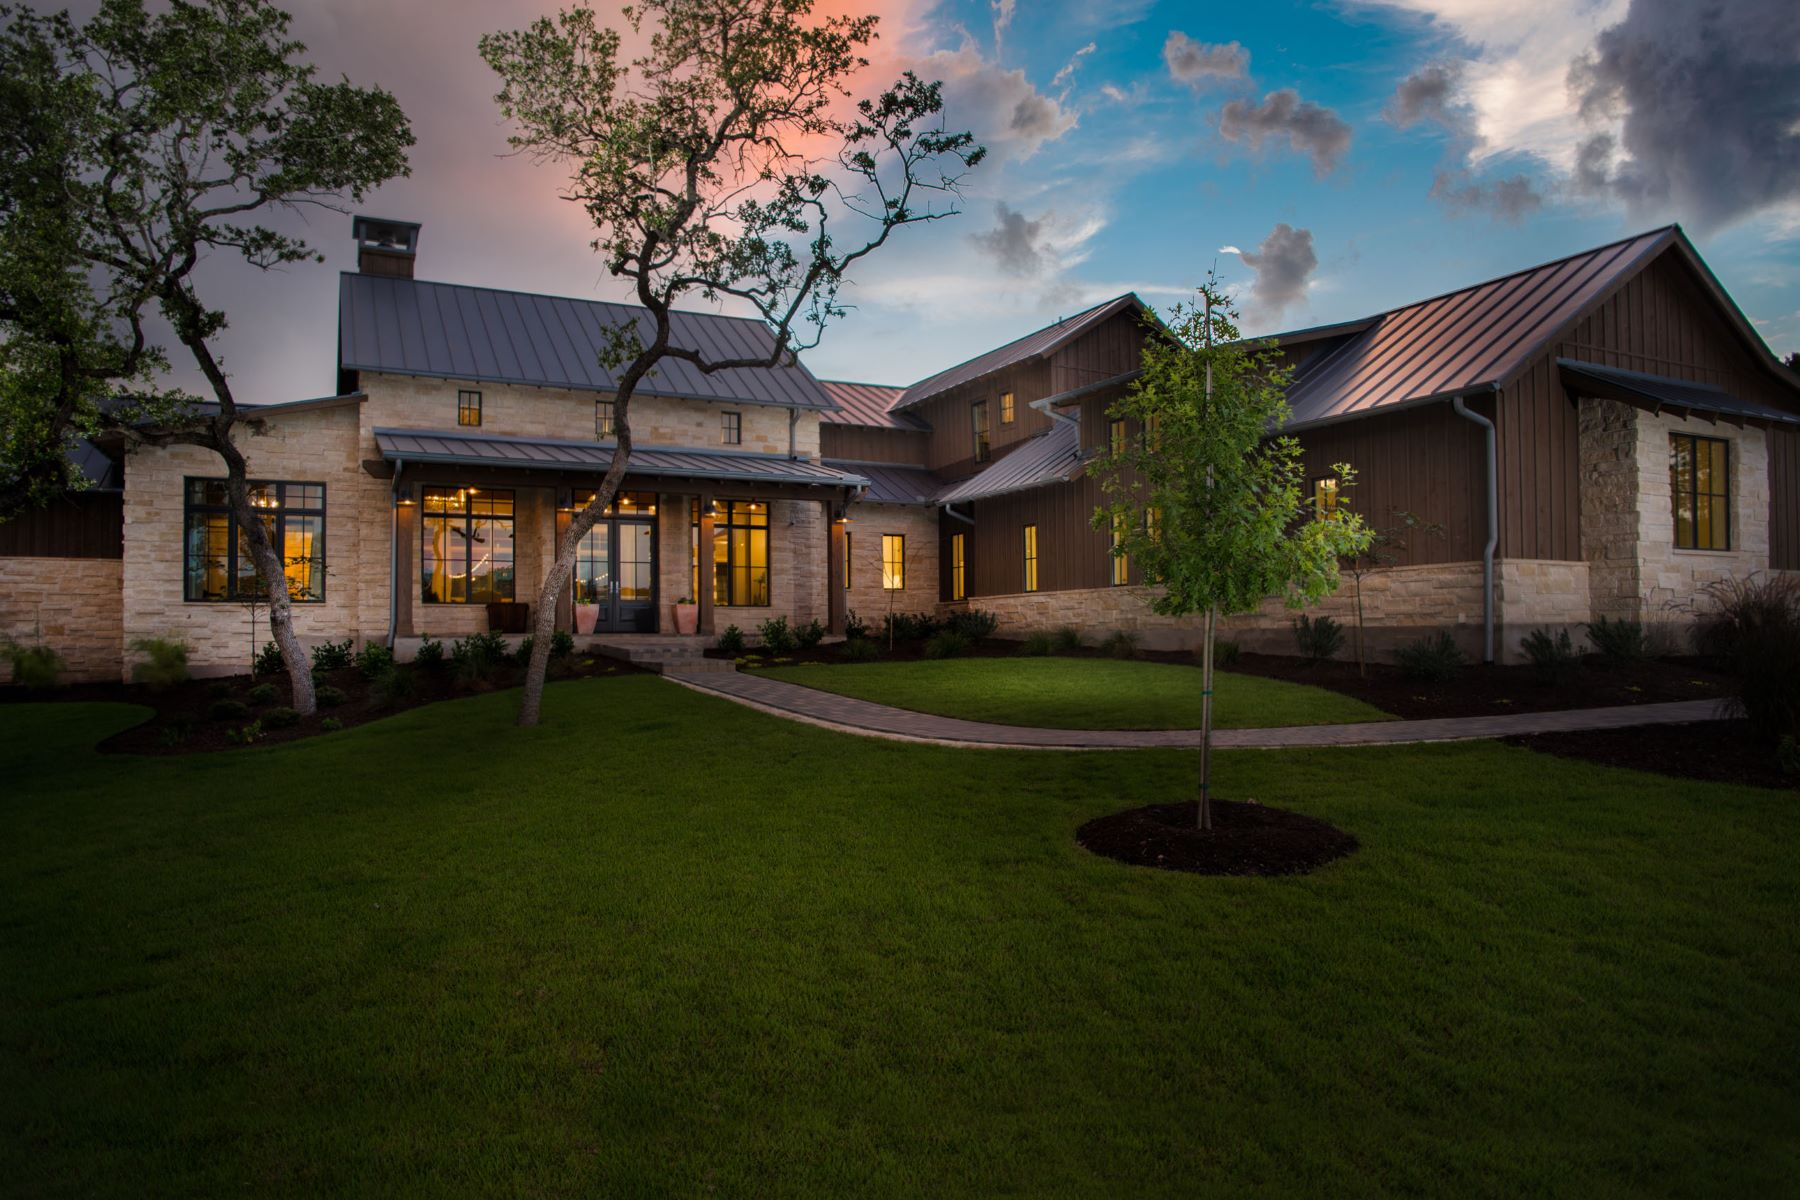 Single Family Home for Sale at Spectacular Contemporary Farmhouse 1500 Poco Bueno Ct Spicewood, Texas 78669 United States